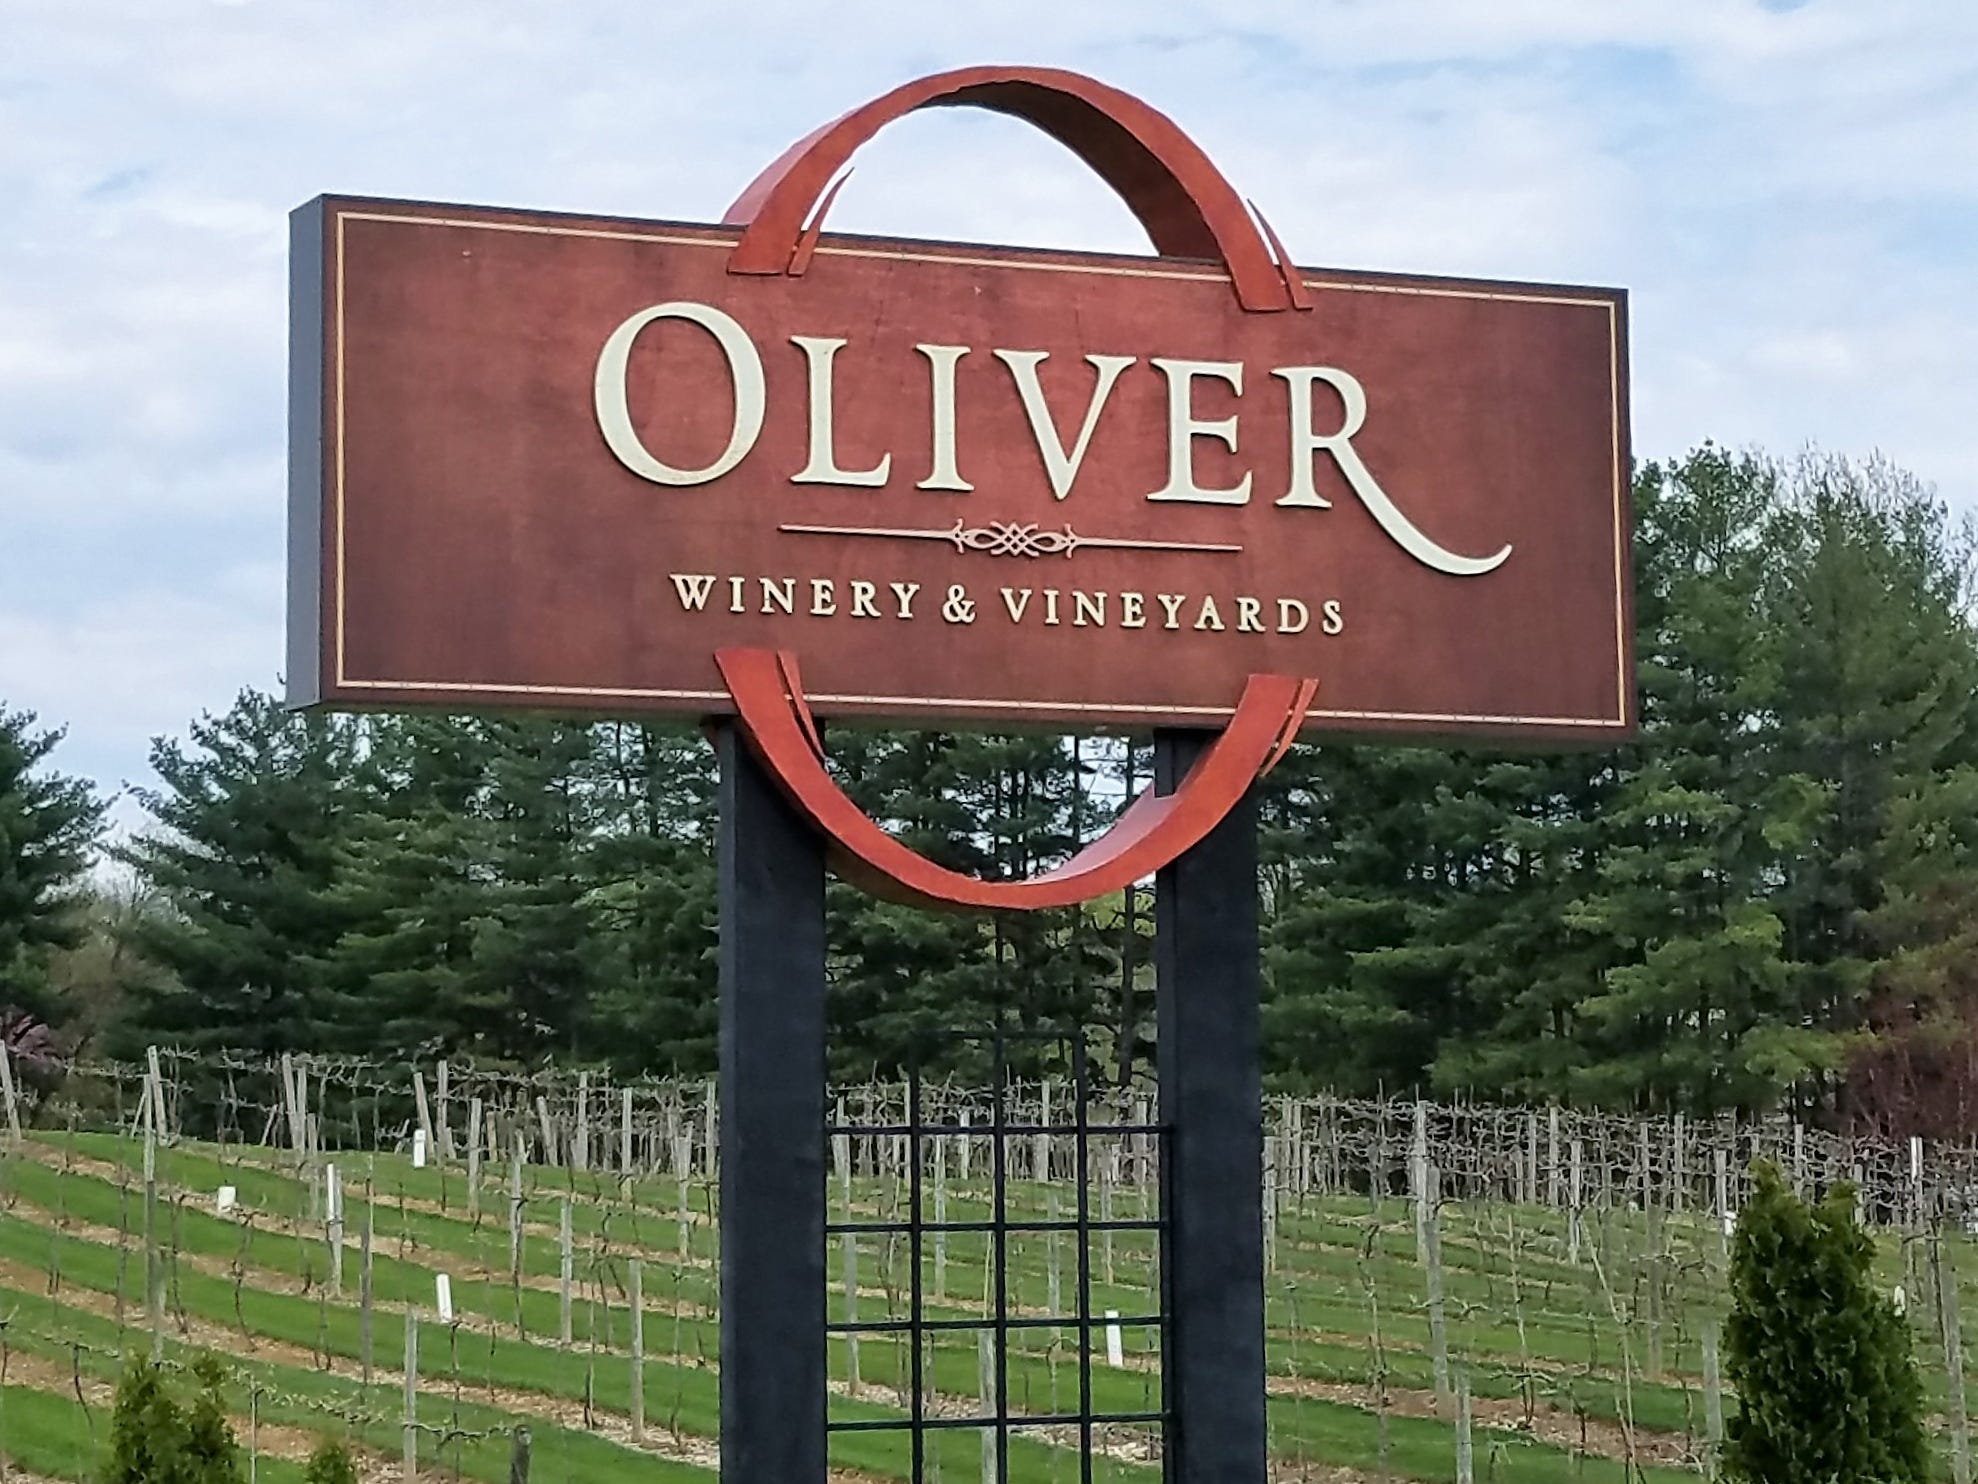 Oliver Winery grows 54 acres of grapes in its Creekbend Vineyard.